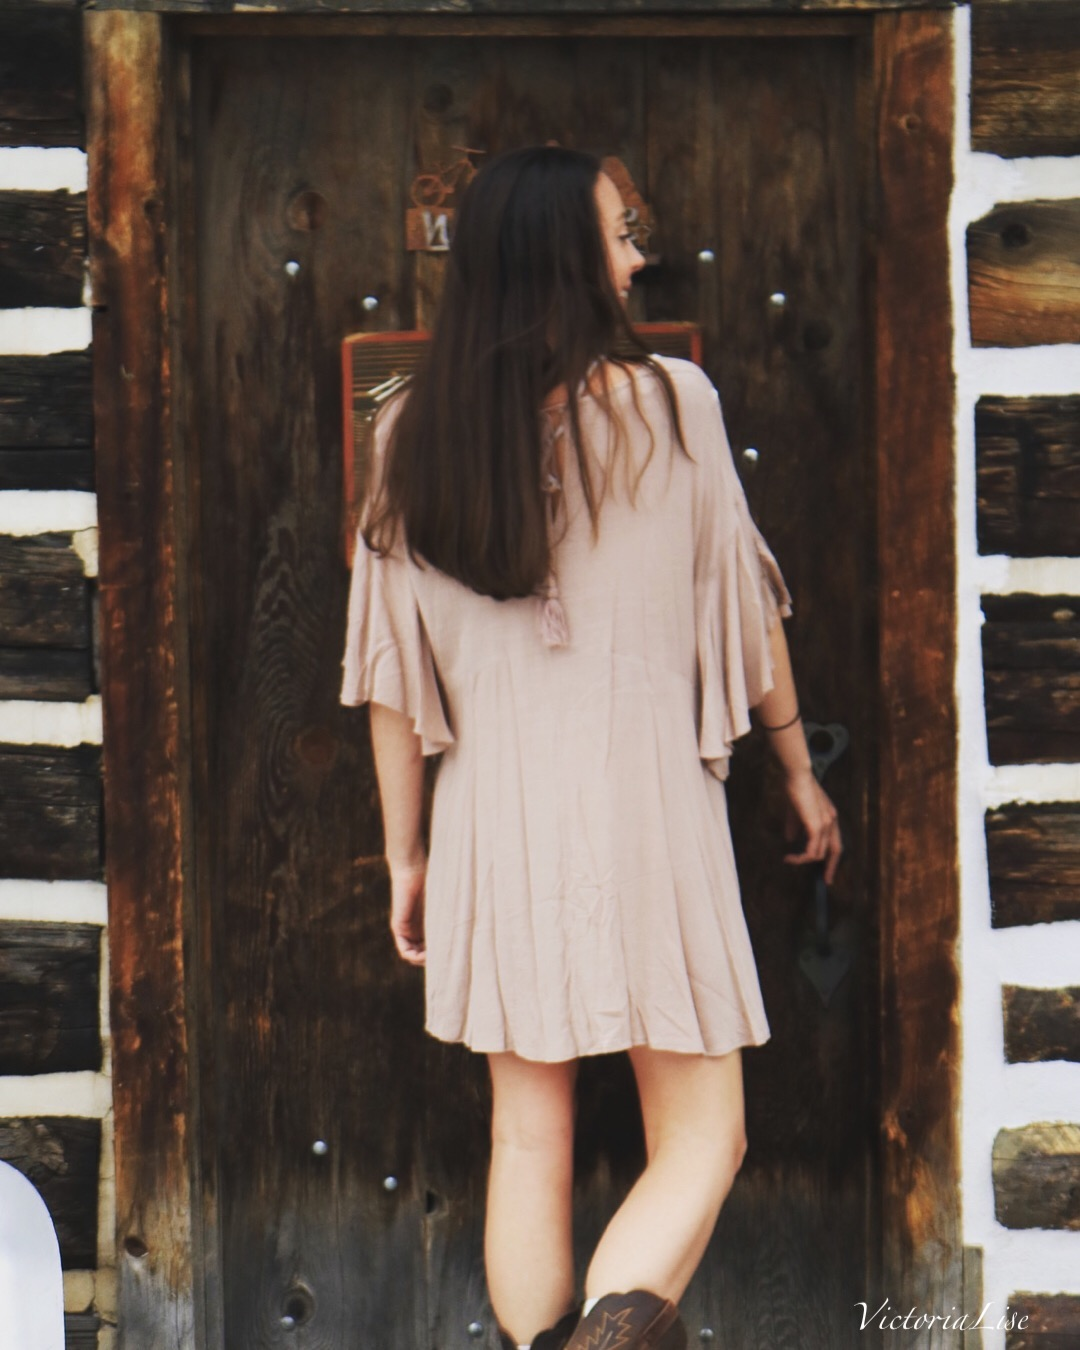 Victoria Lise models ruffled dress in front of authentic Colorado cabin.